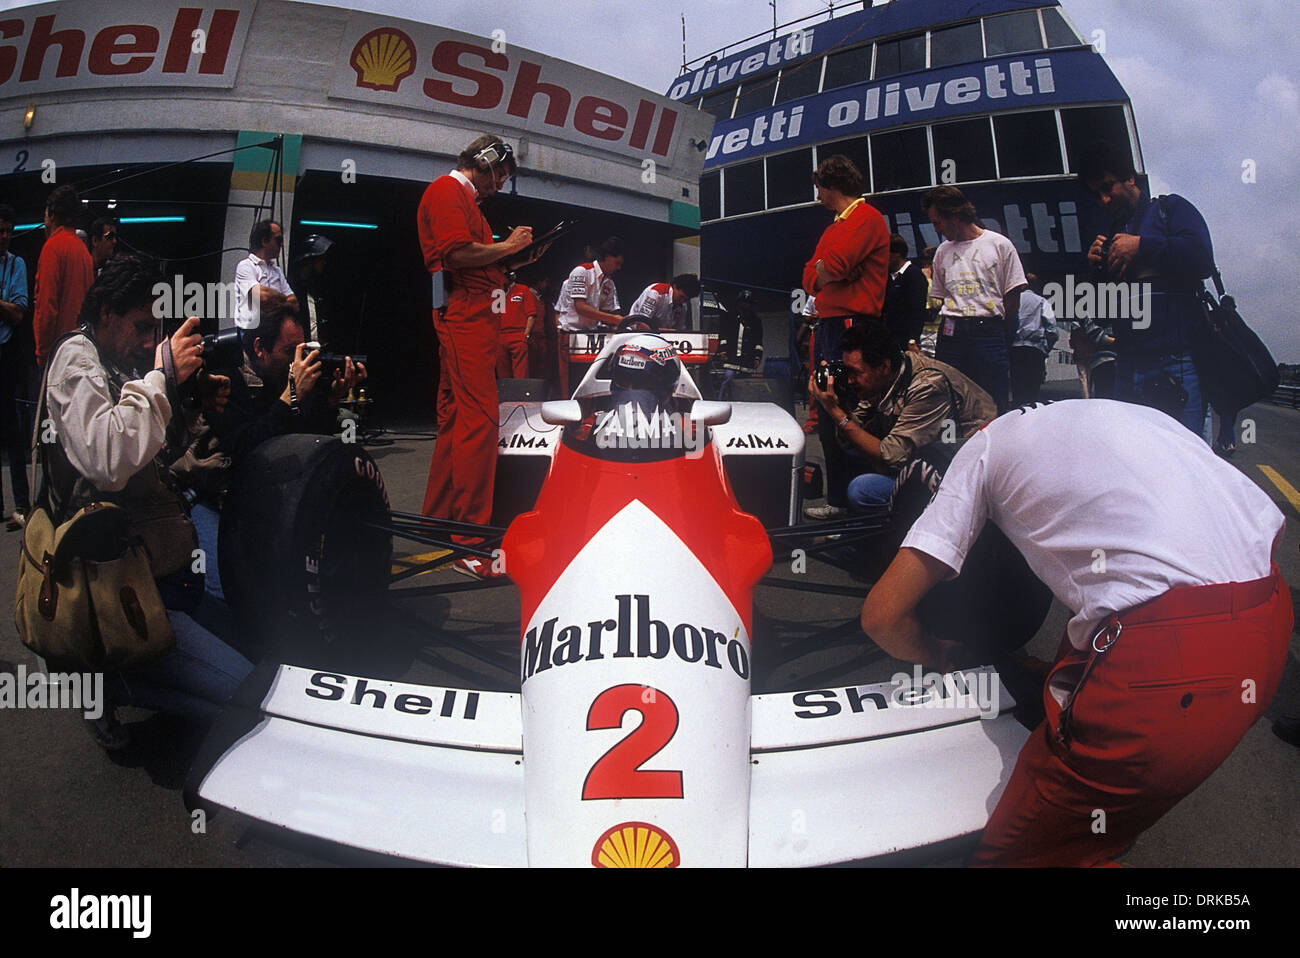 Alain Prost in his Malboro- McLaren F1 car in the pits 1985 Portuguese GP - Stock Image